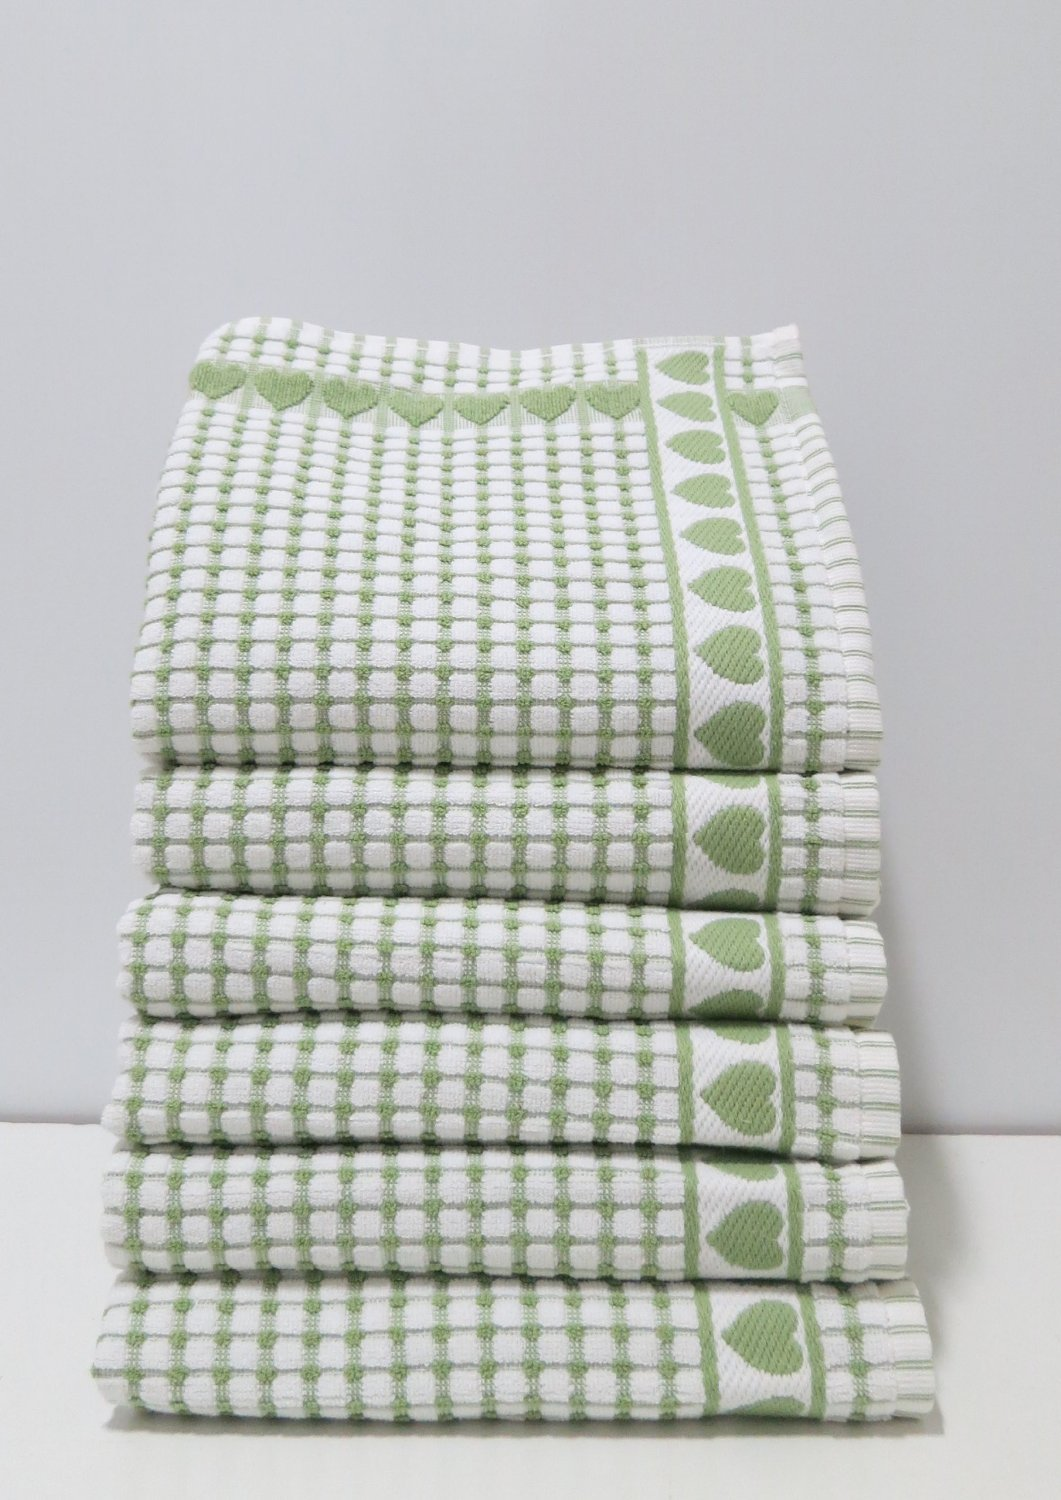 Kitchen Towels , Love Gift, Highly Absorbent, Low Lint, 100% Cotton Dish Towels, High Quality Check Print. Tea Towels, 19 X 31. Bleachable Towels From Roseberry Linen, (Green, 6 Pieces) by Roseberry Linen